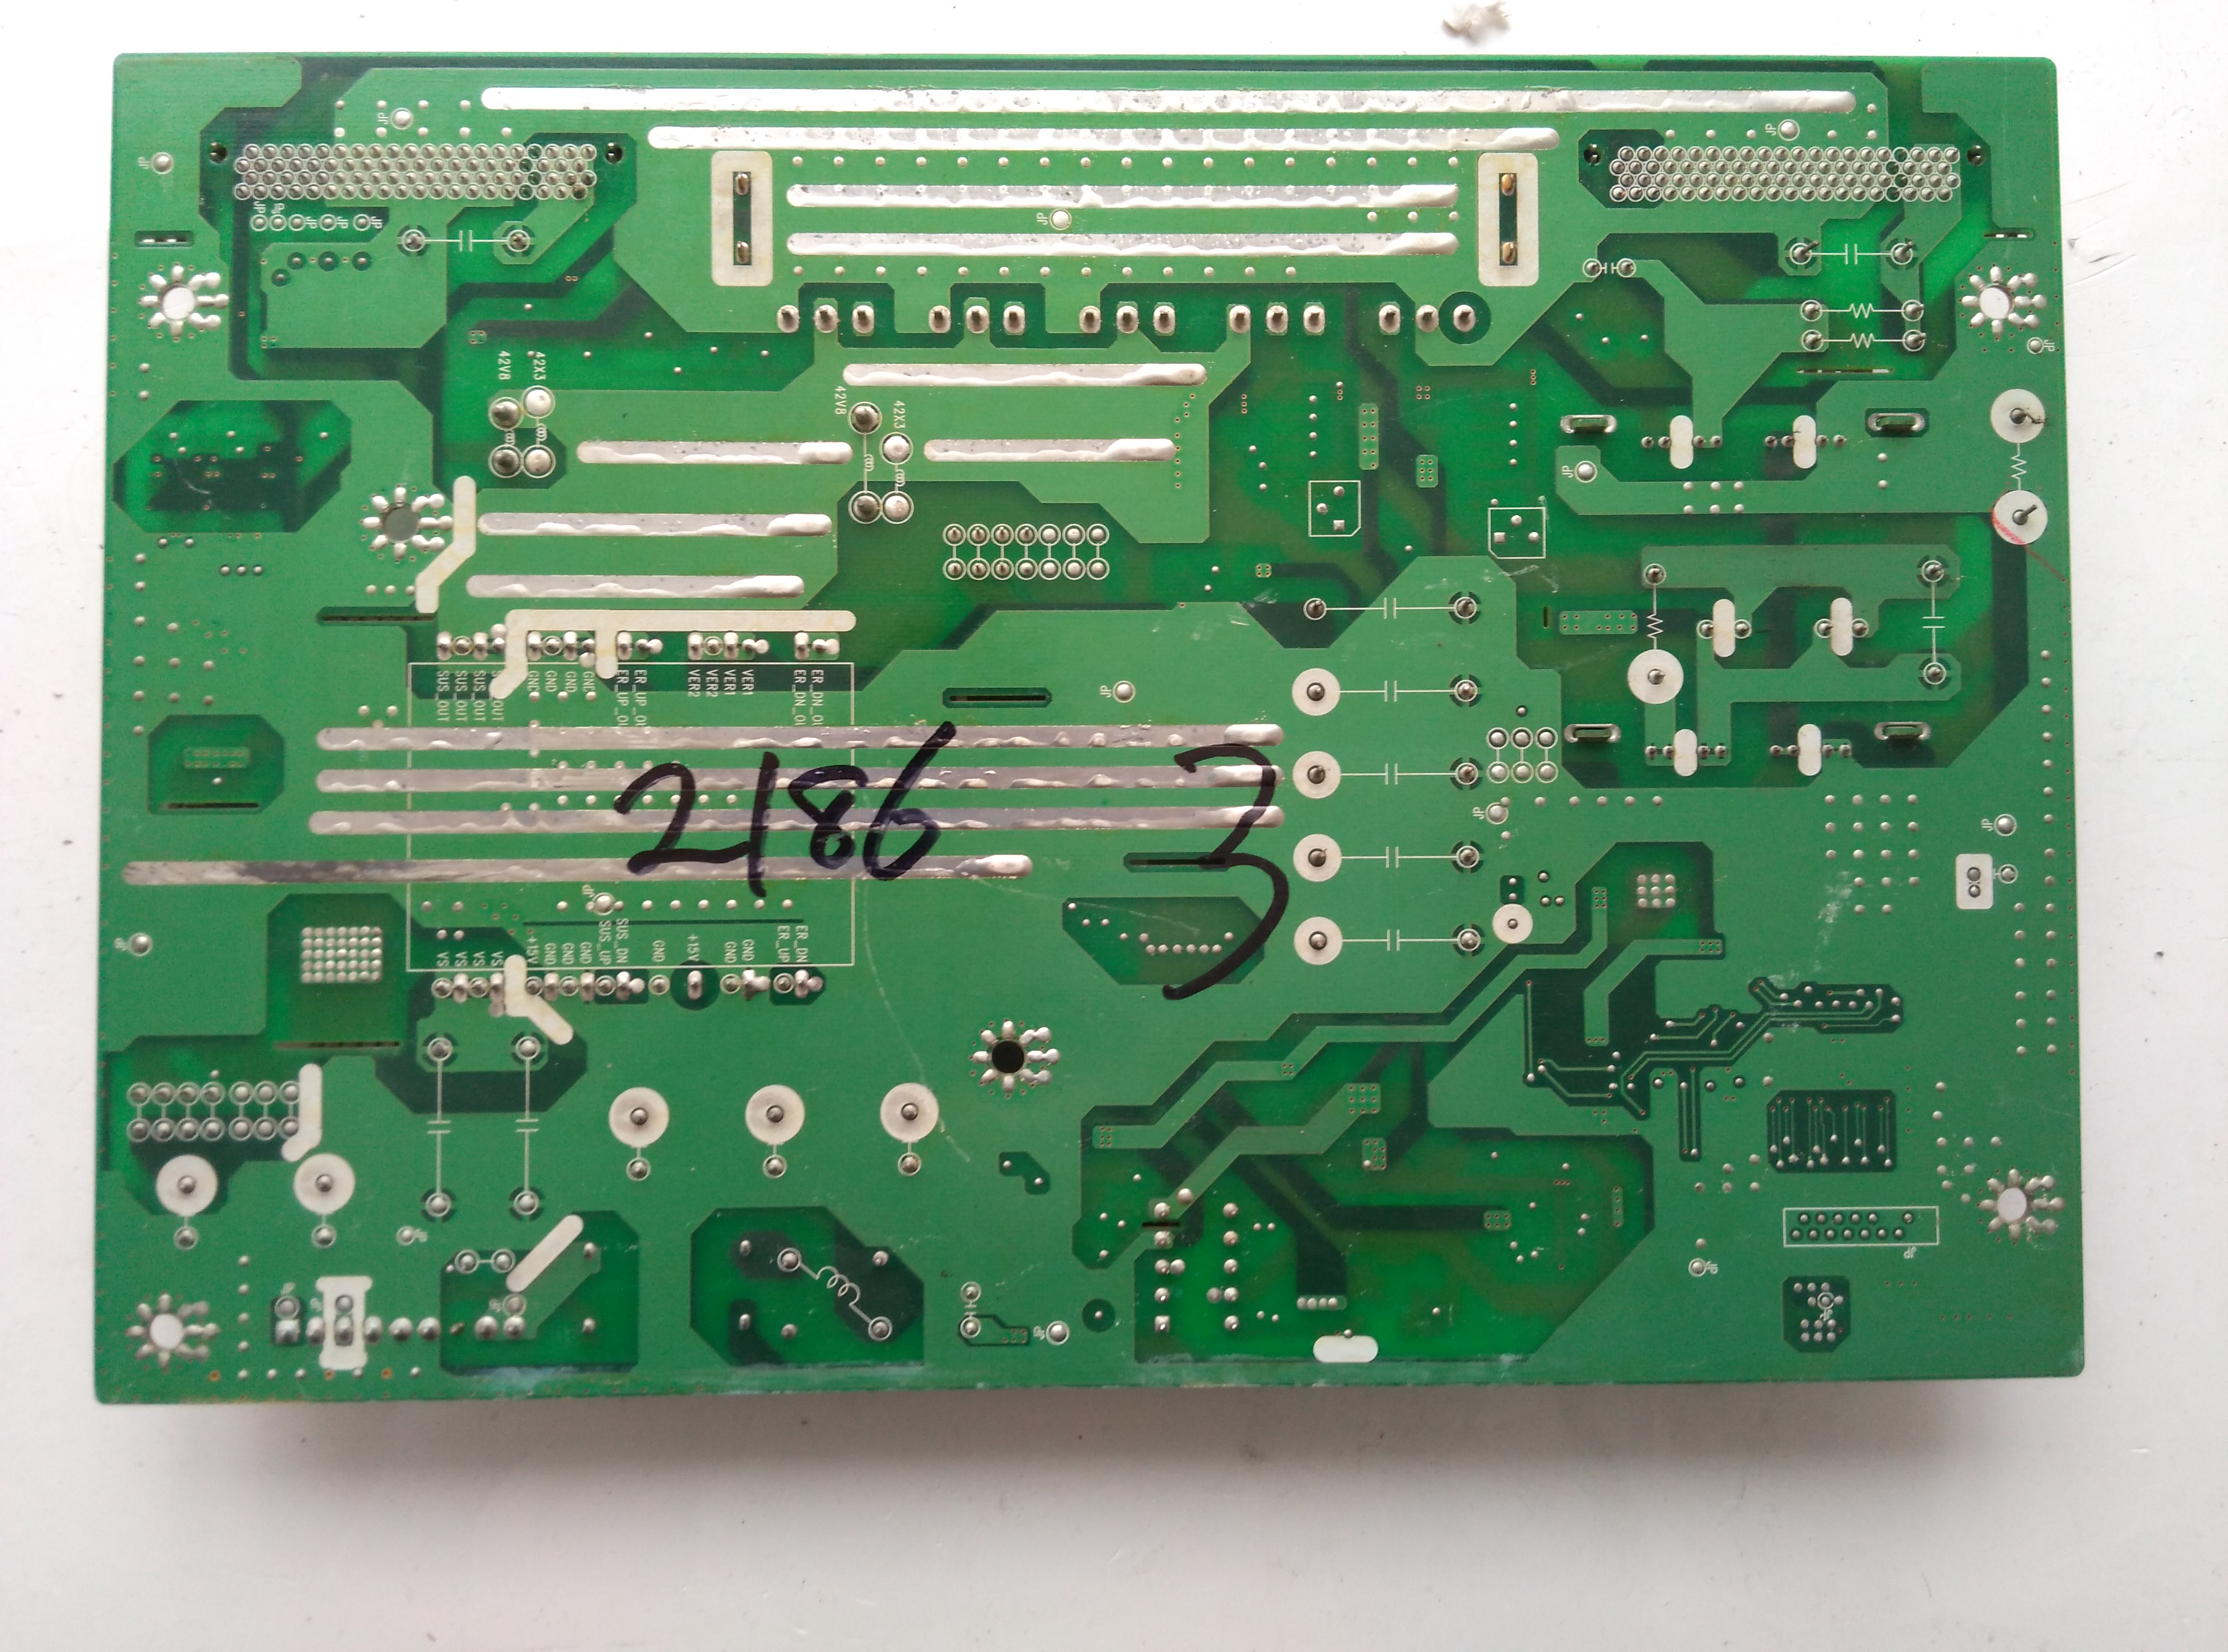 6871QYH948B LG YSUS BOARD REPAIR KIT